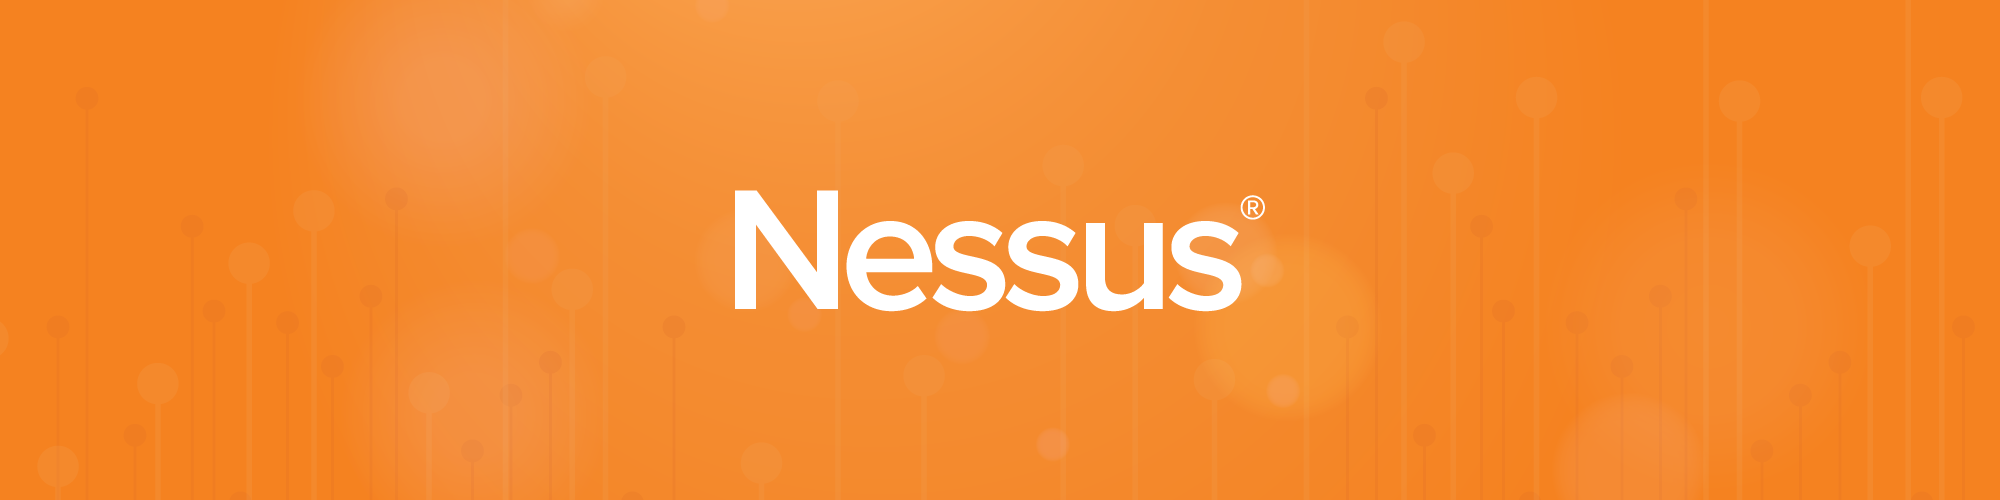 Getting Started with Nessus on Kali Linux - Cybrary